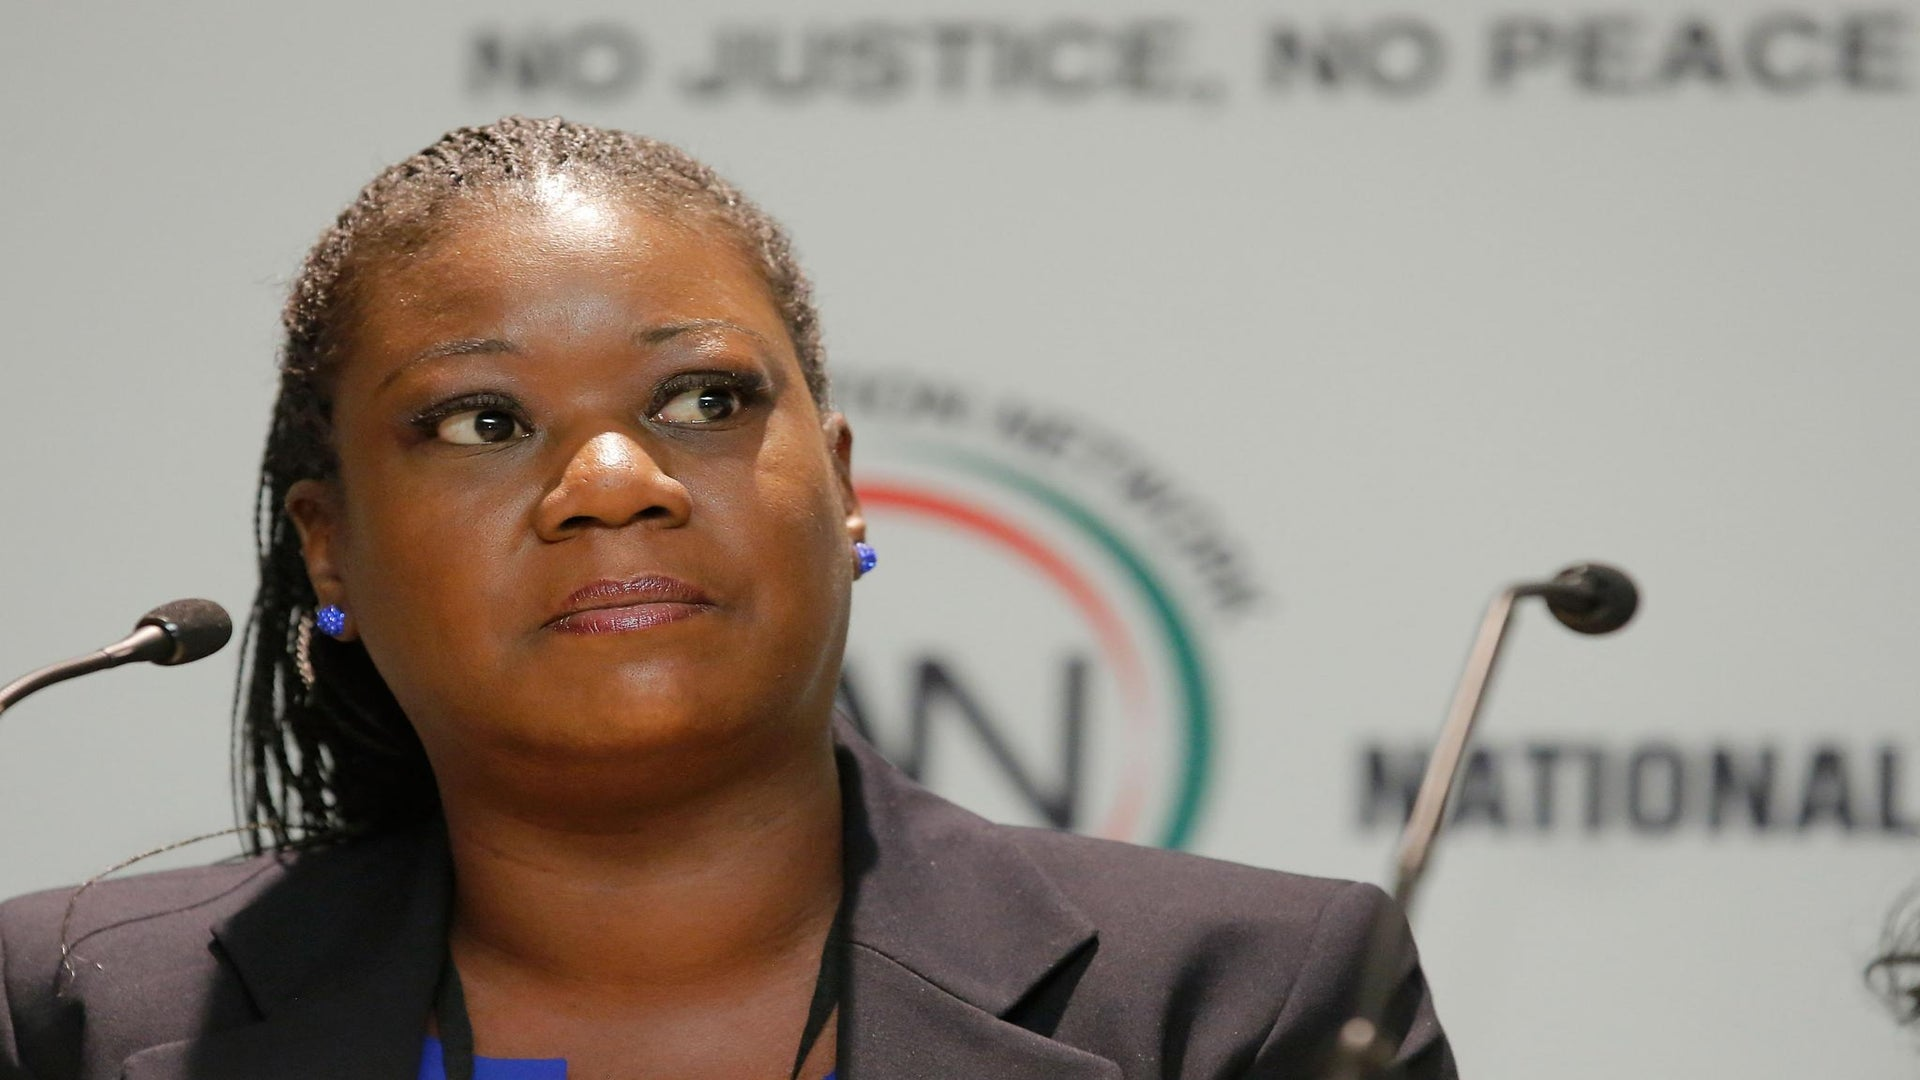 #WEW: Sybrina Fulton Continues to Be the Voice of the Voiceless Years After Her Son's Death